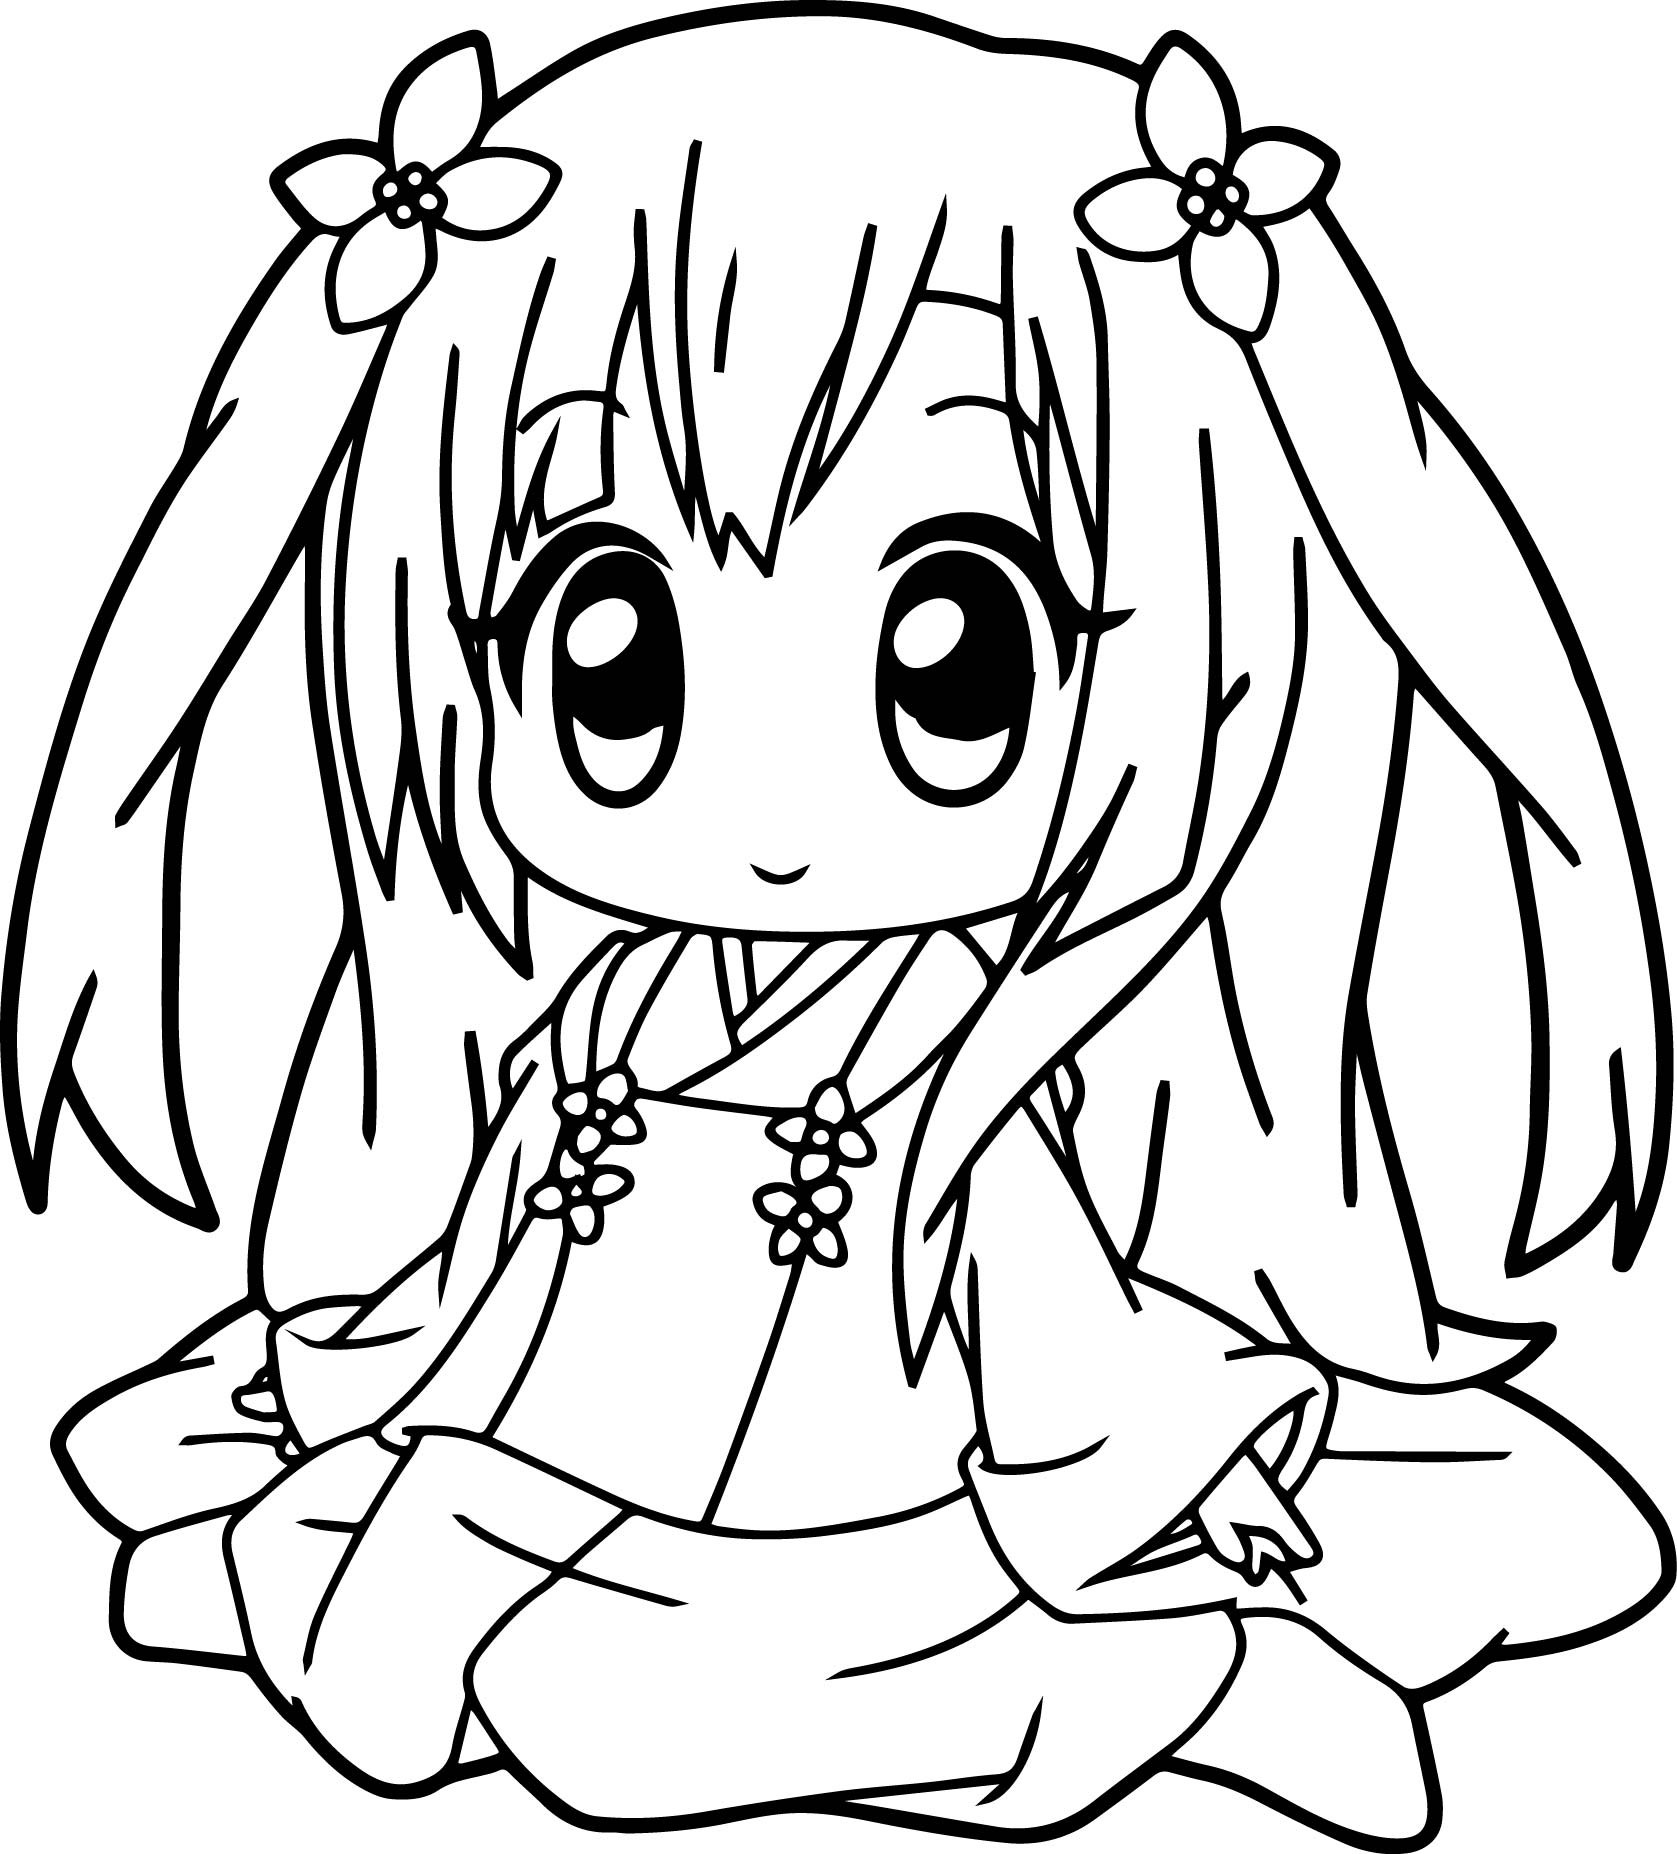 Anime Coloring Pages For Teens  Anime Girl Coloring Pages coloringsuite